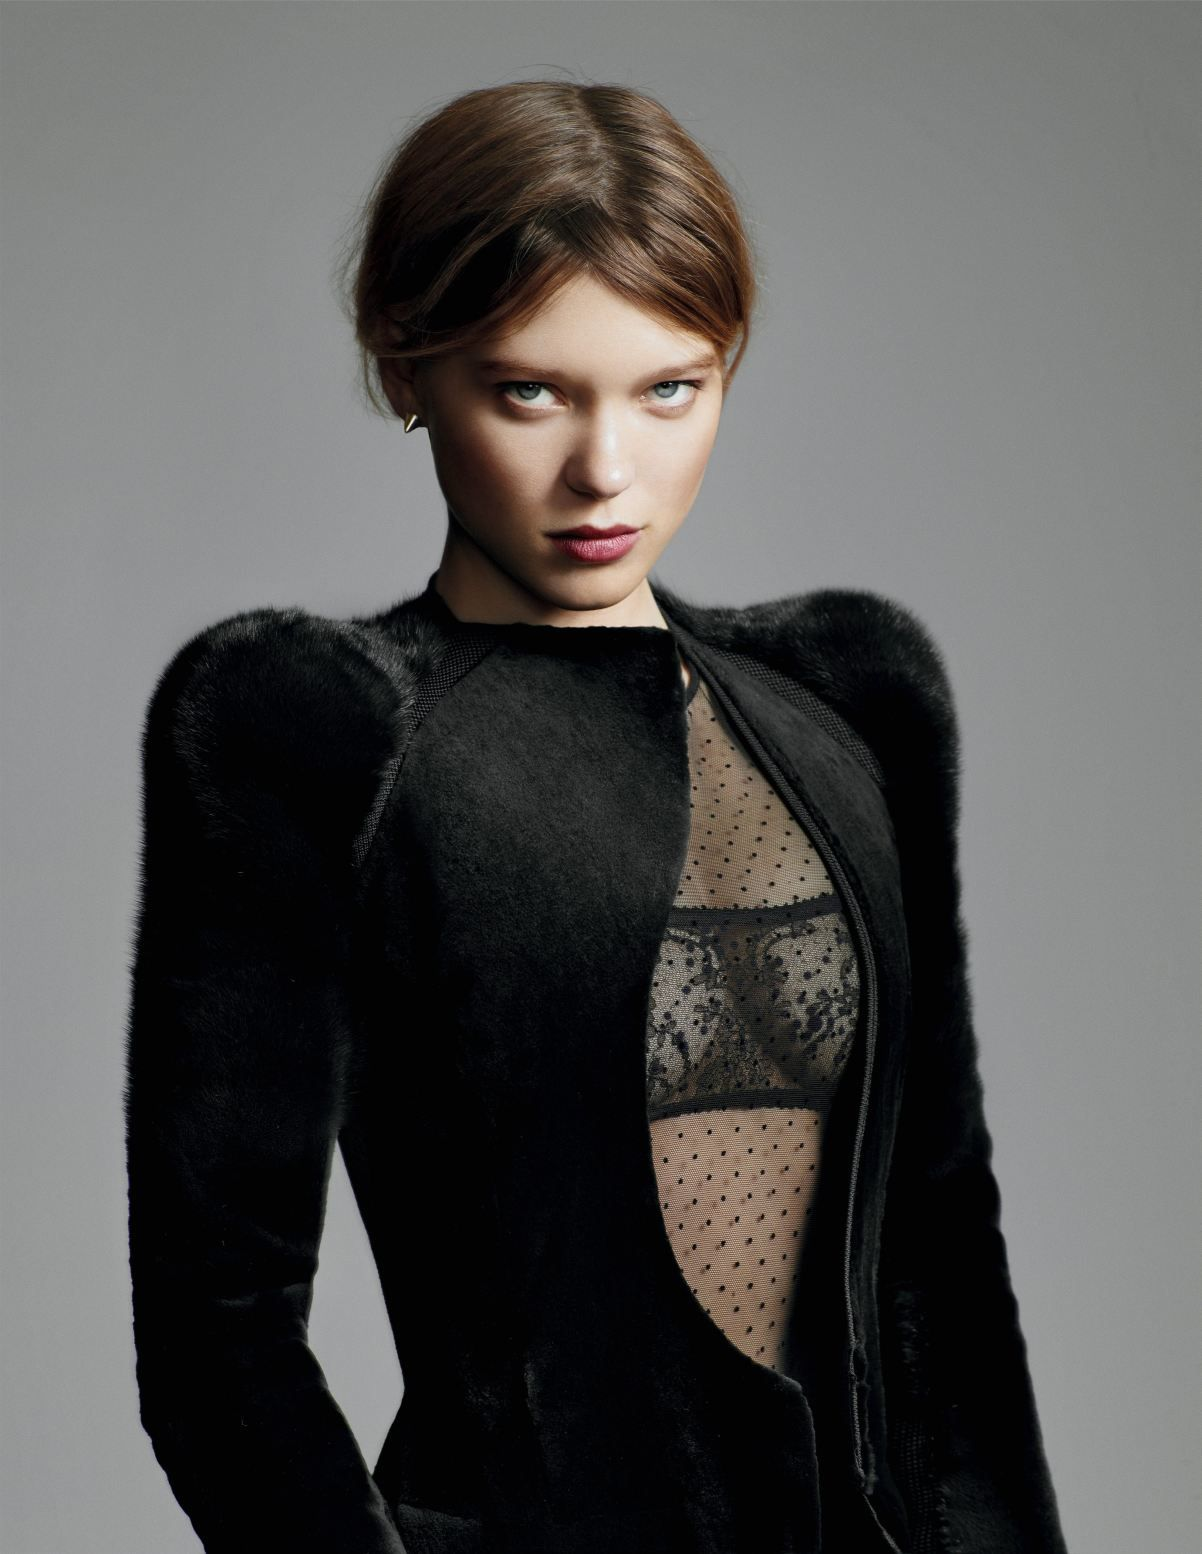 Lea Seydoux In Elle Magazine France February 2014 Issue: Adele Exarchopoulos